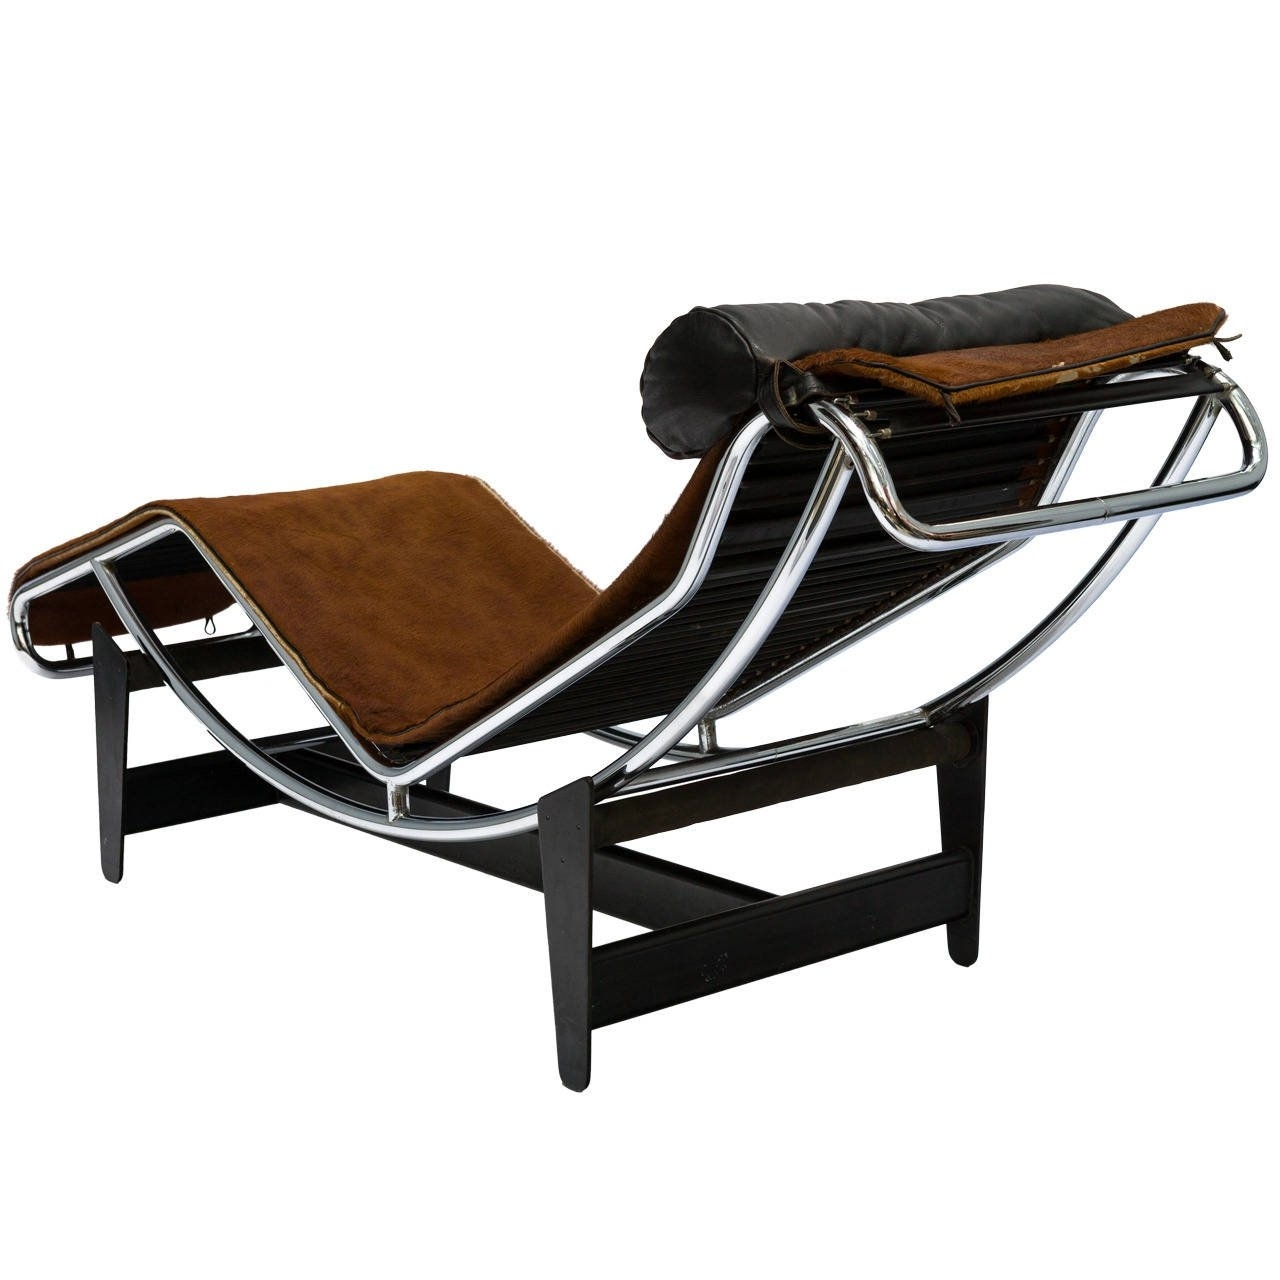 Le Corbusier Chaises Intended For Widely Used Le Corbusier Lc4 Chaise Lounge Chair In Cowhide For Sale At 1Stdibs (View 10 of 15)